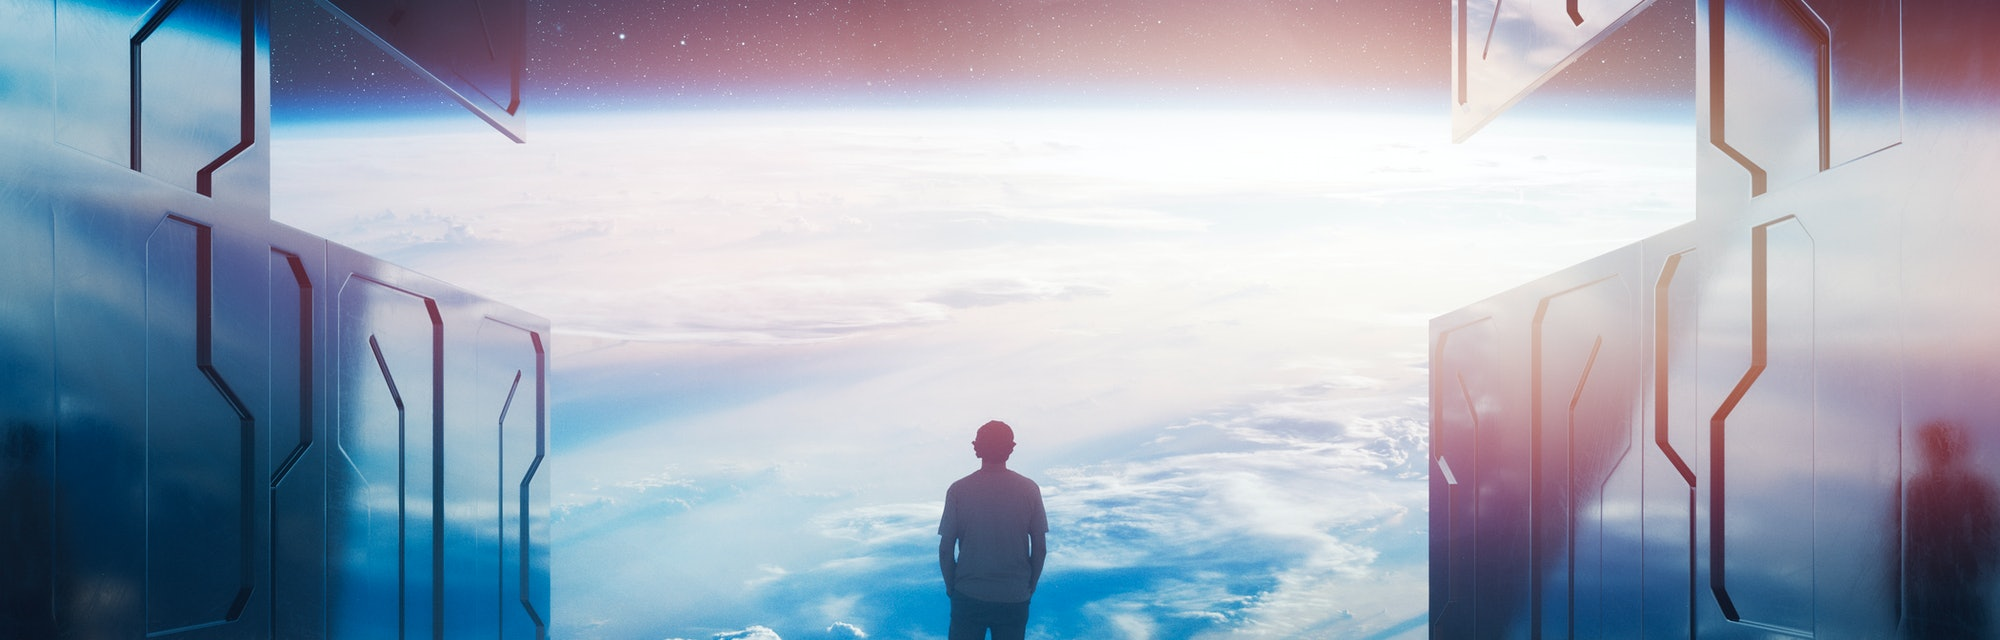 Casual man standing on space platform watching planet Earth. 3D generated image. Earth texture is fr...